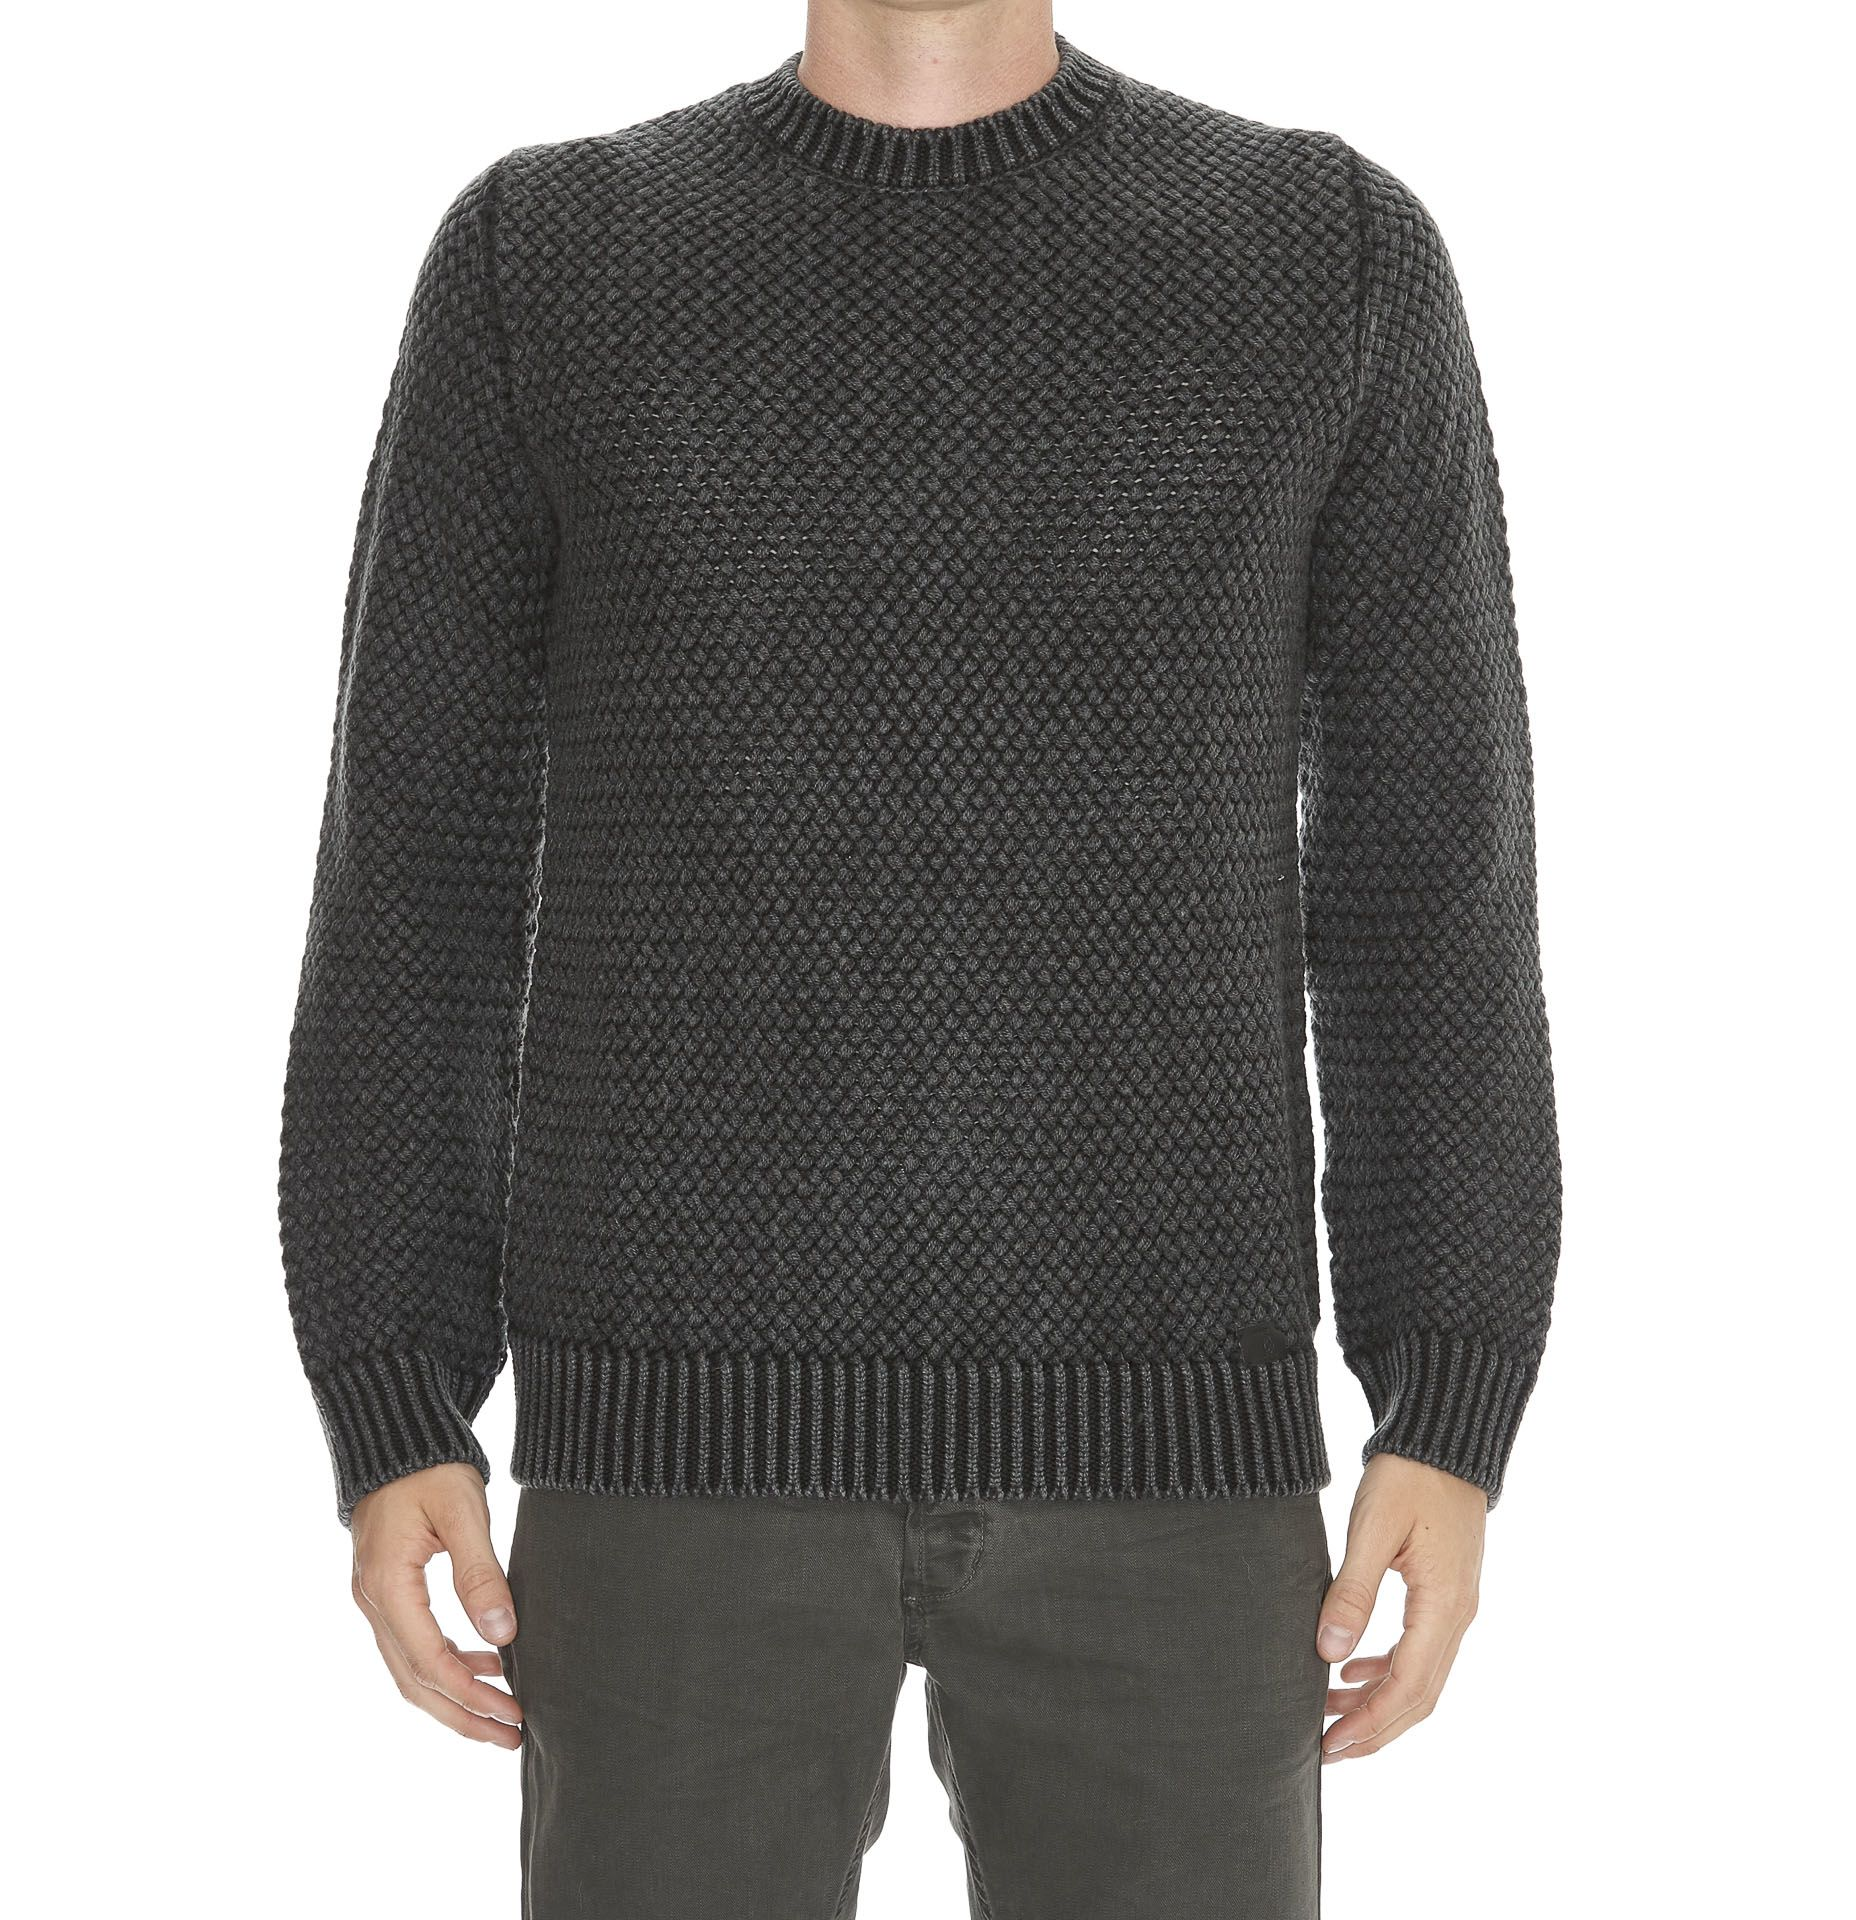 Tods Sweater